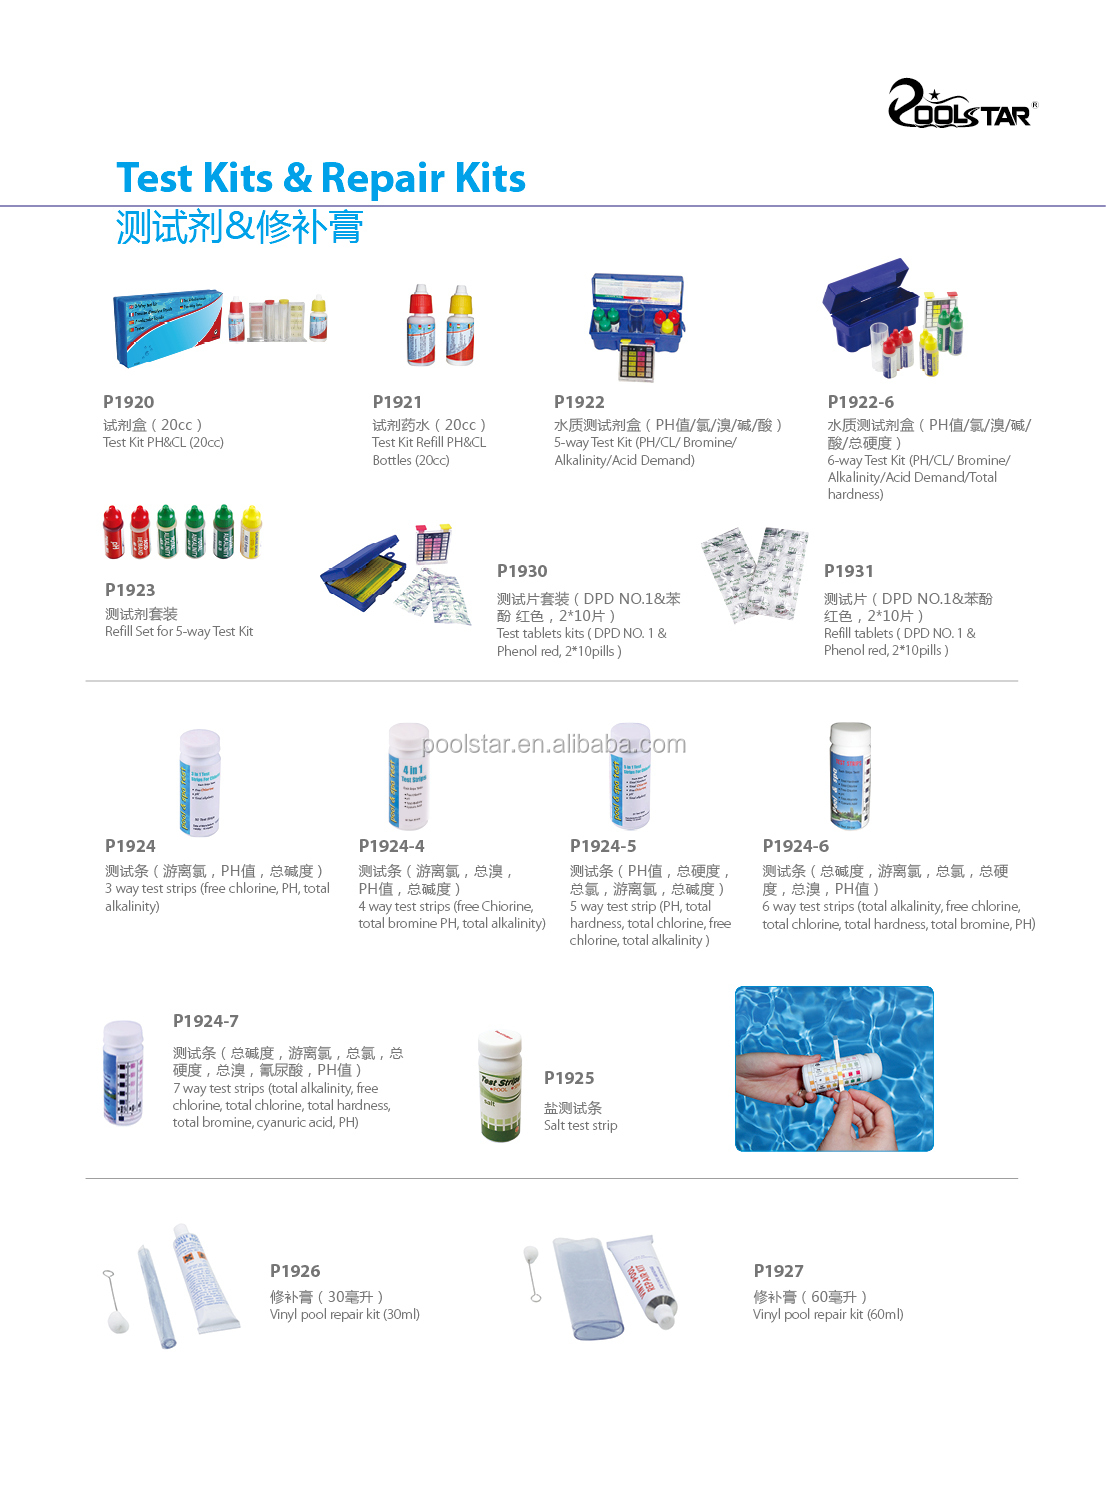 Spa Leroy Merlin Intex 6 Places ph&cl water test dpd#1 and pheno red tablets kit for swimming pool spa,  view water test kits, poolstar product details from ningbo poolstar pool